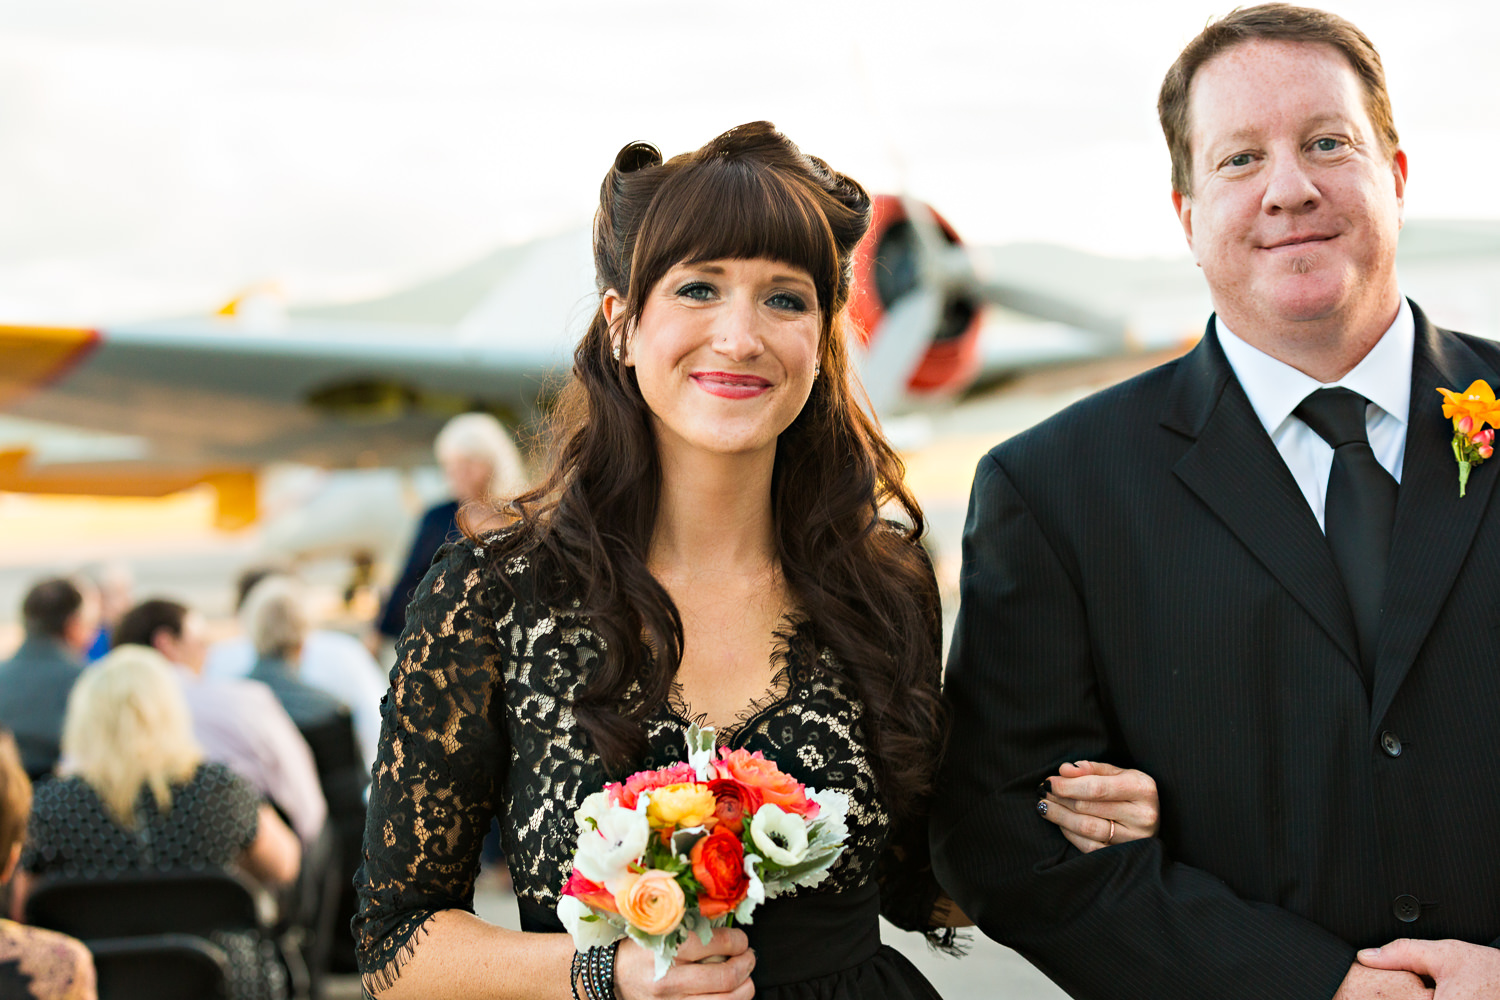 missoula-museum-mountain-flying-wedding-party-during-recessional.jpg